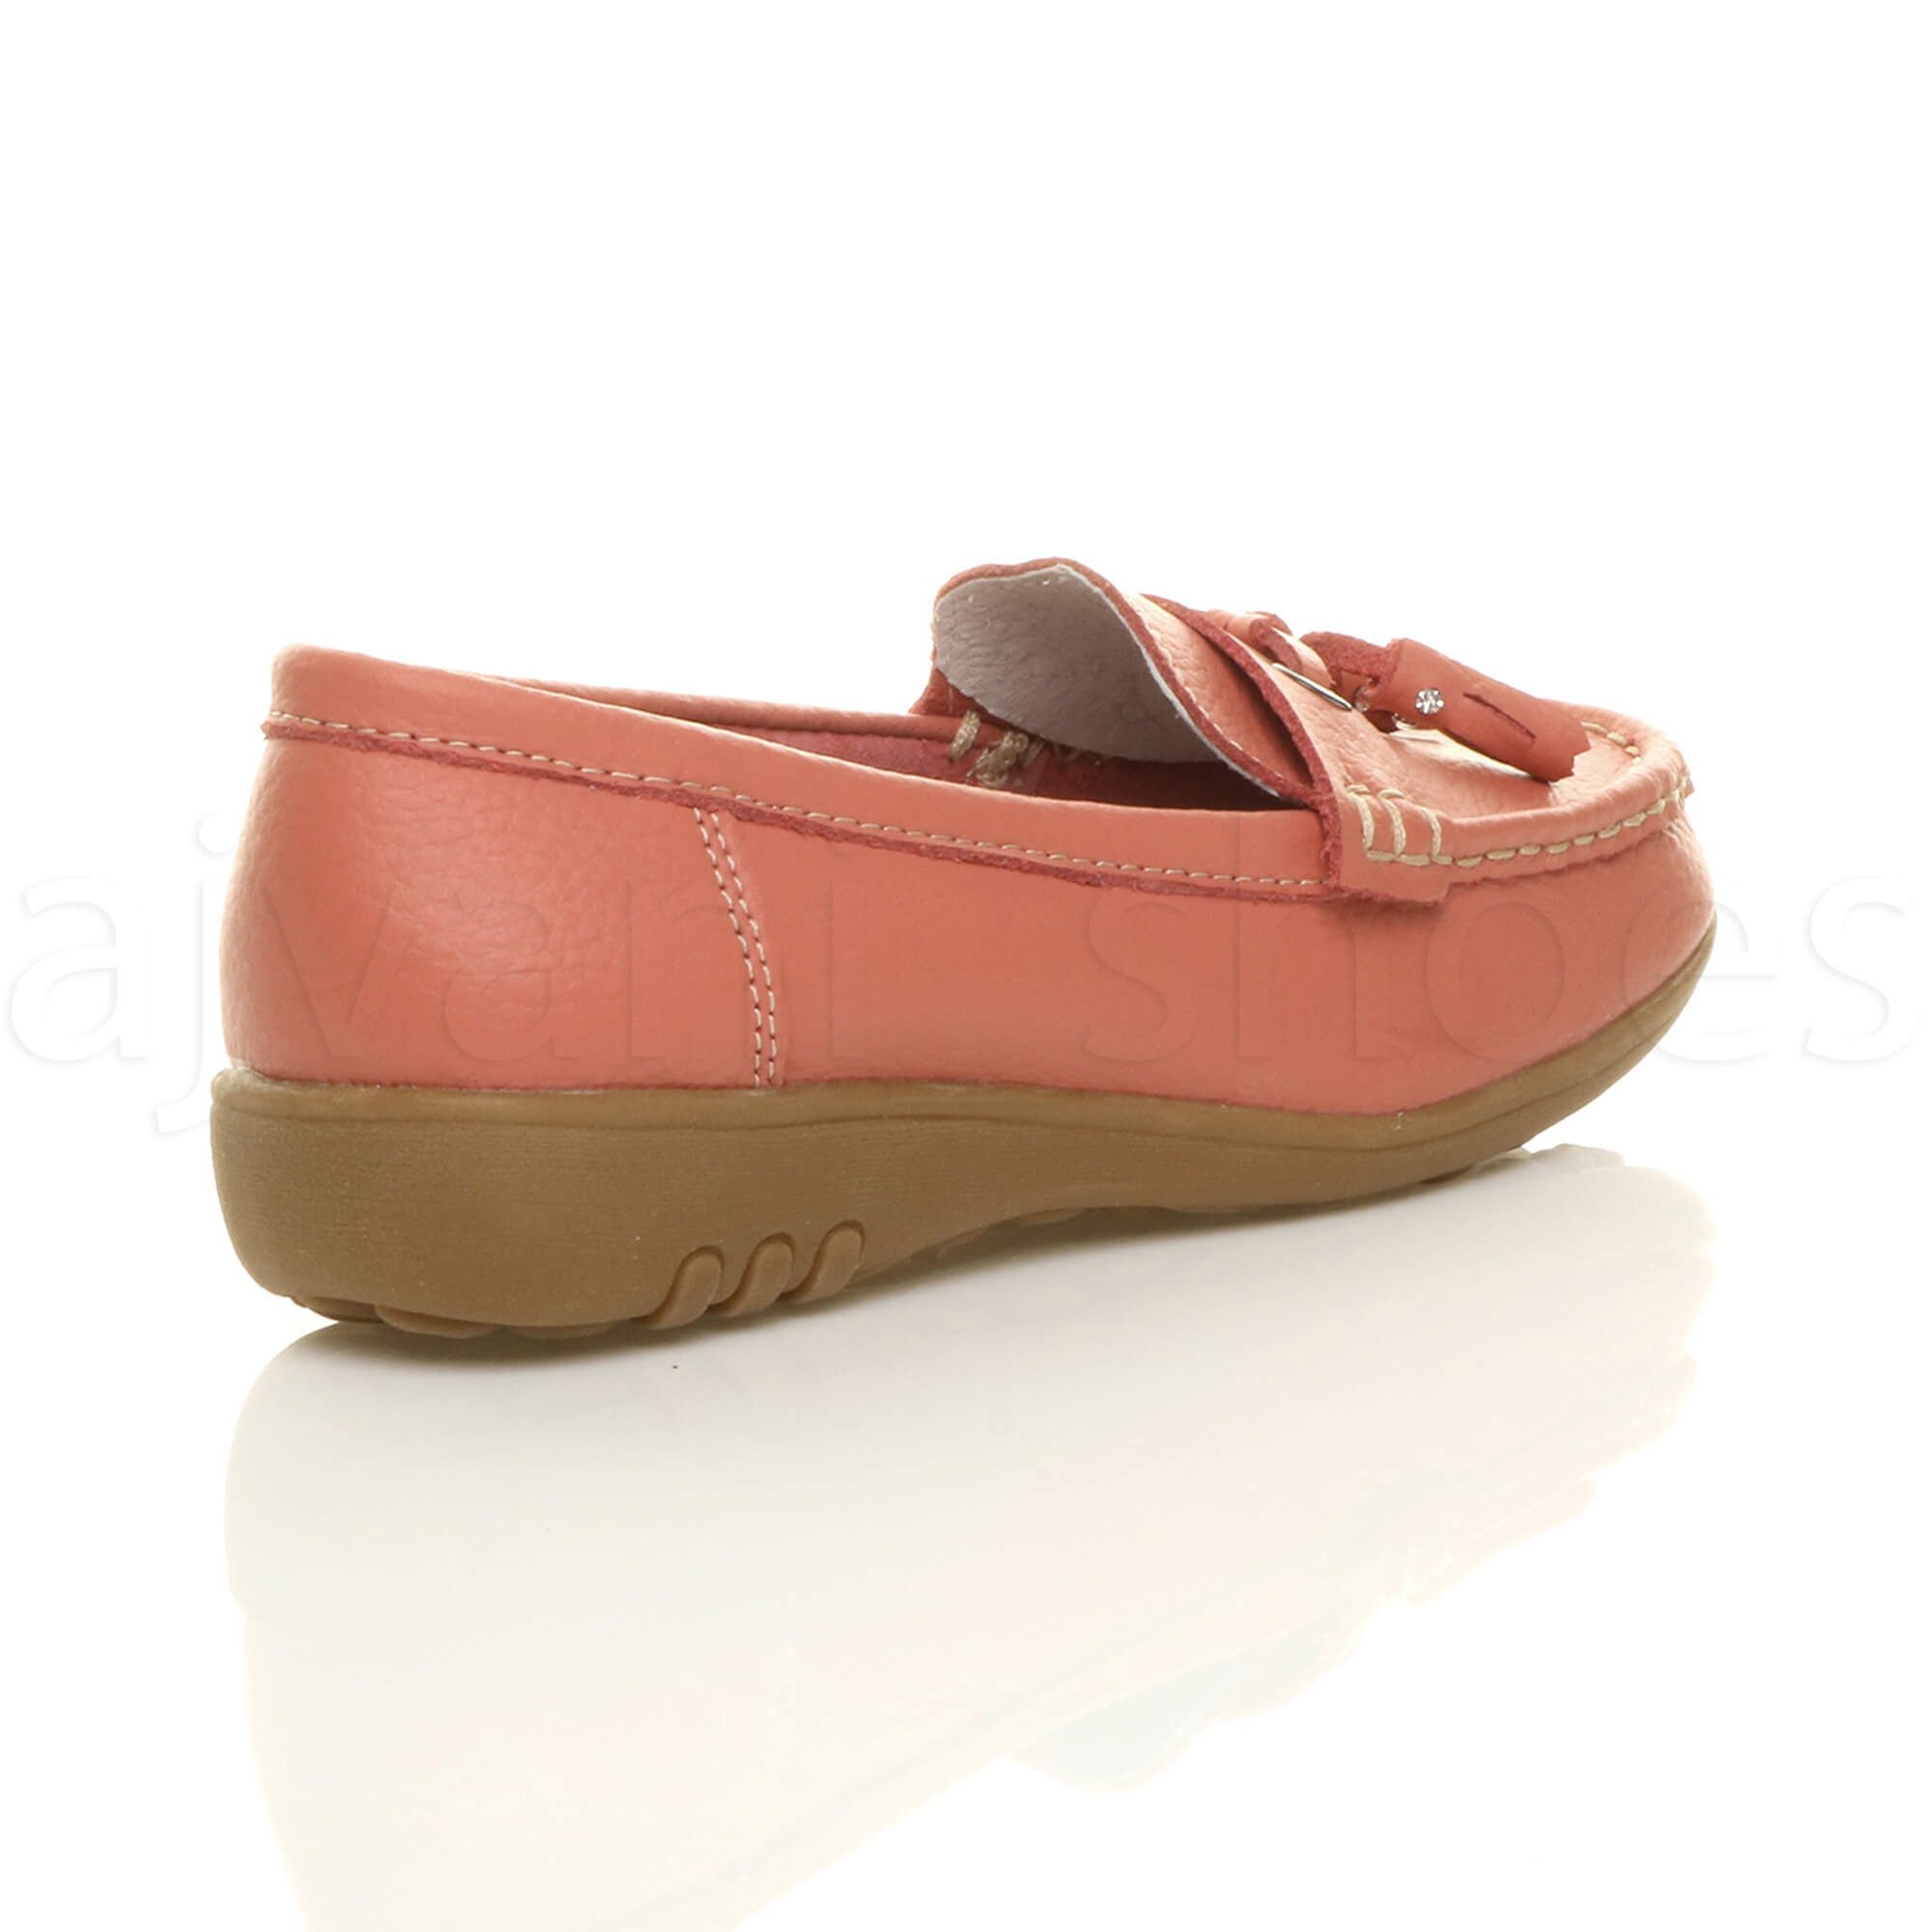 WOMENS-LADIES-LOW-HEEL-WEDGE-LEATHER-TASSEL-LOAFERS-COMFORT-MOCCASINS-SHOES-SIZE thumbnail 29